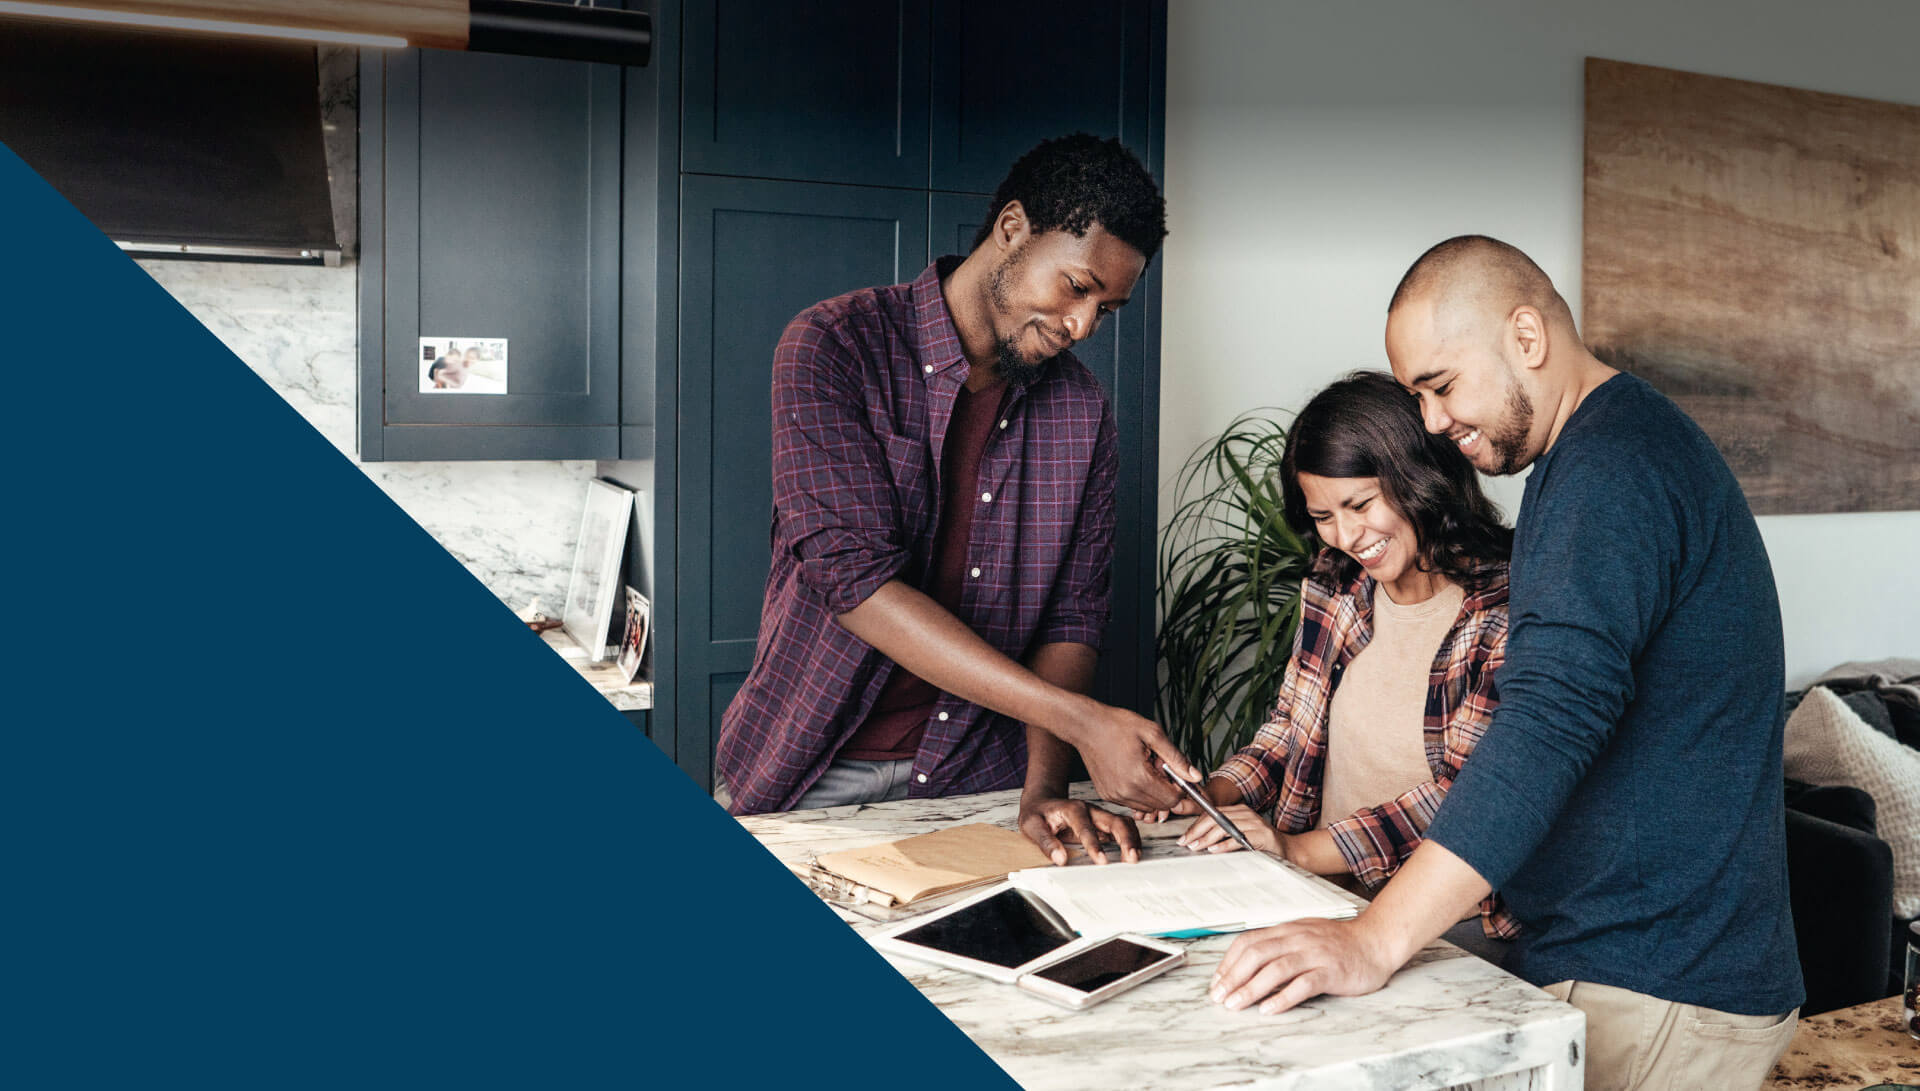 Leasing agent in a luxury kitchen showing documents to a smiling couple.